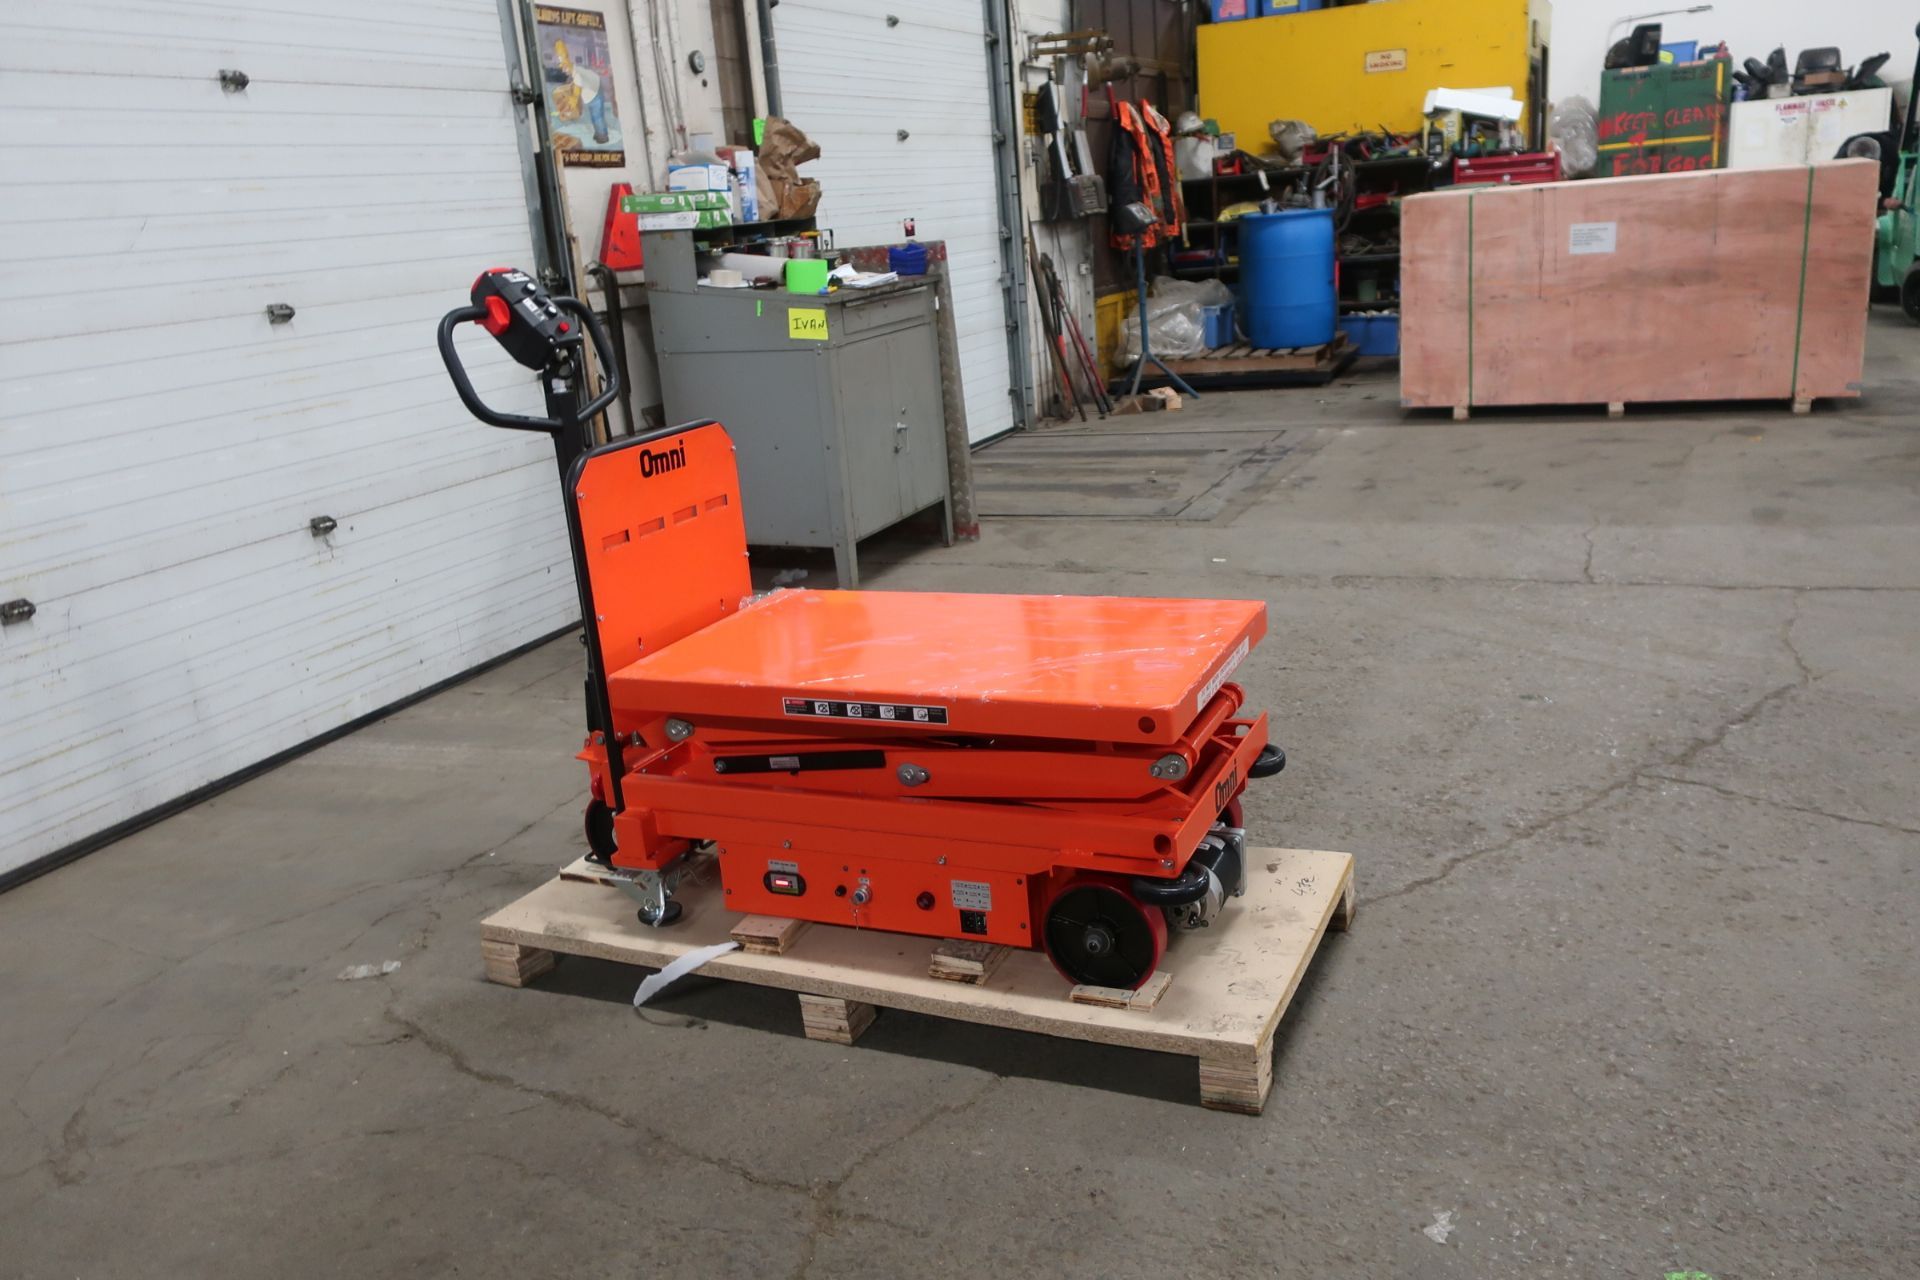 """MINT Omni Motorized Lift Table Platform 800kg / 1760lbs capacity and 1850mm / 73"""" Lift Height UNUSED - Image 2 of 2"""